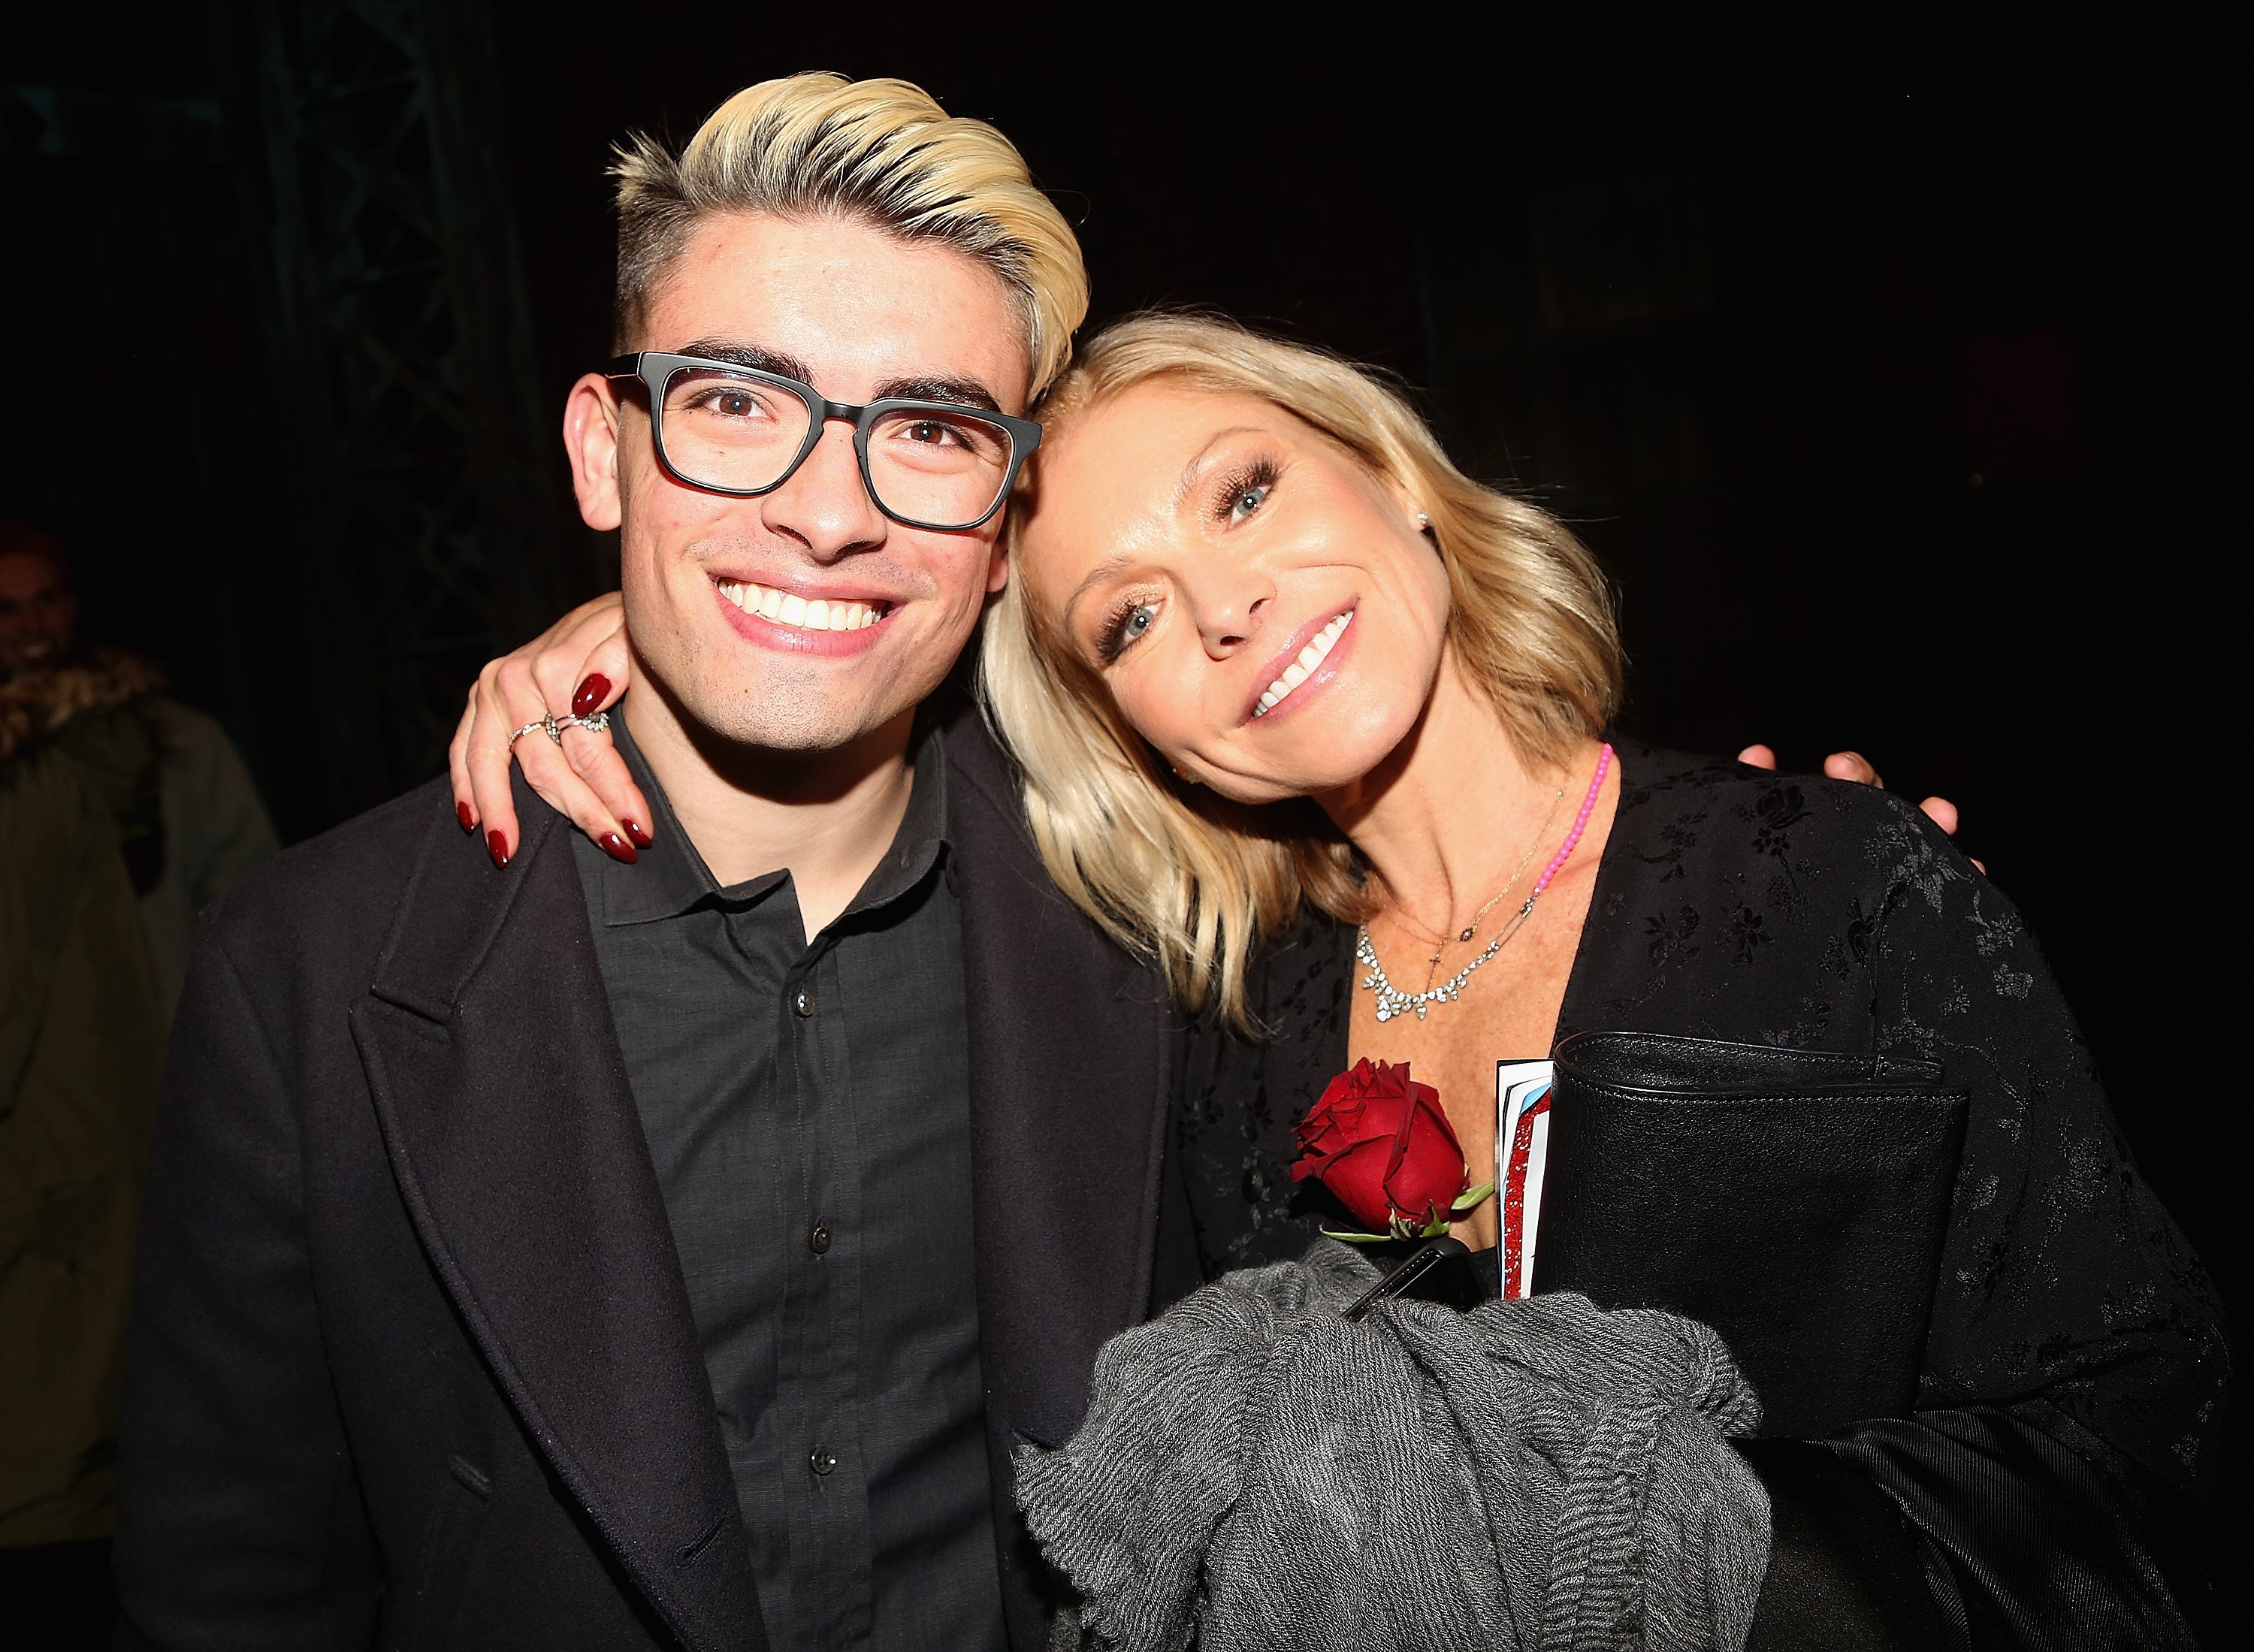 Kelly Ripa responds to backlash over son in 'extreme poverty' joke